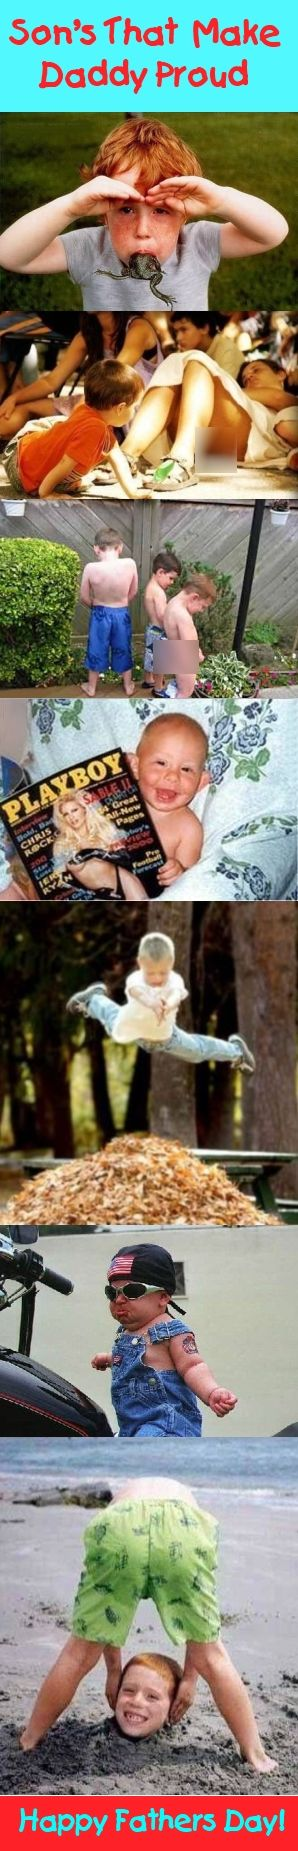 Son's That Make Daddy Proud: Kids Stuff, Hilarious Stuff, Funny Pin, Celebrity Parents